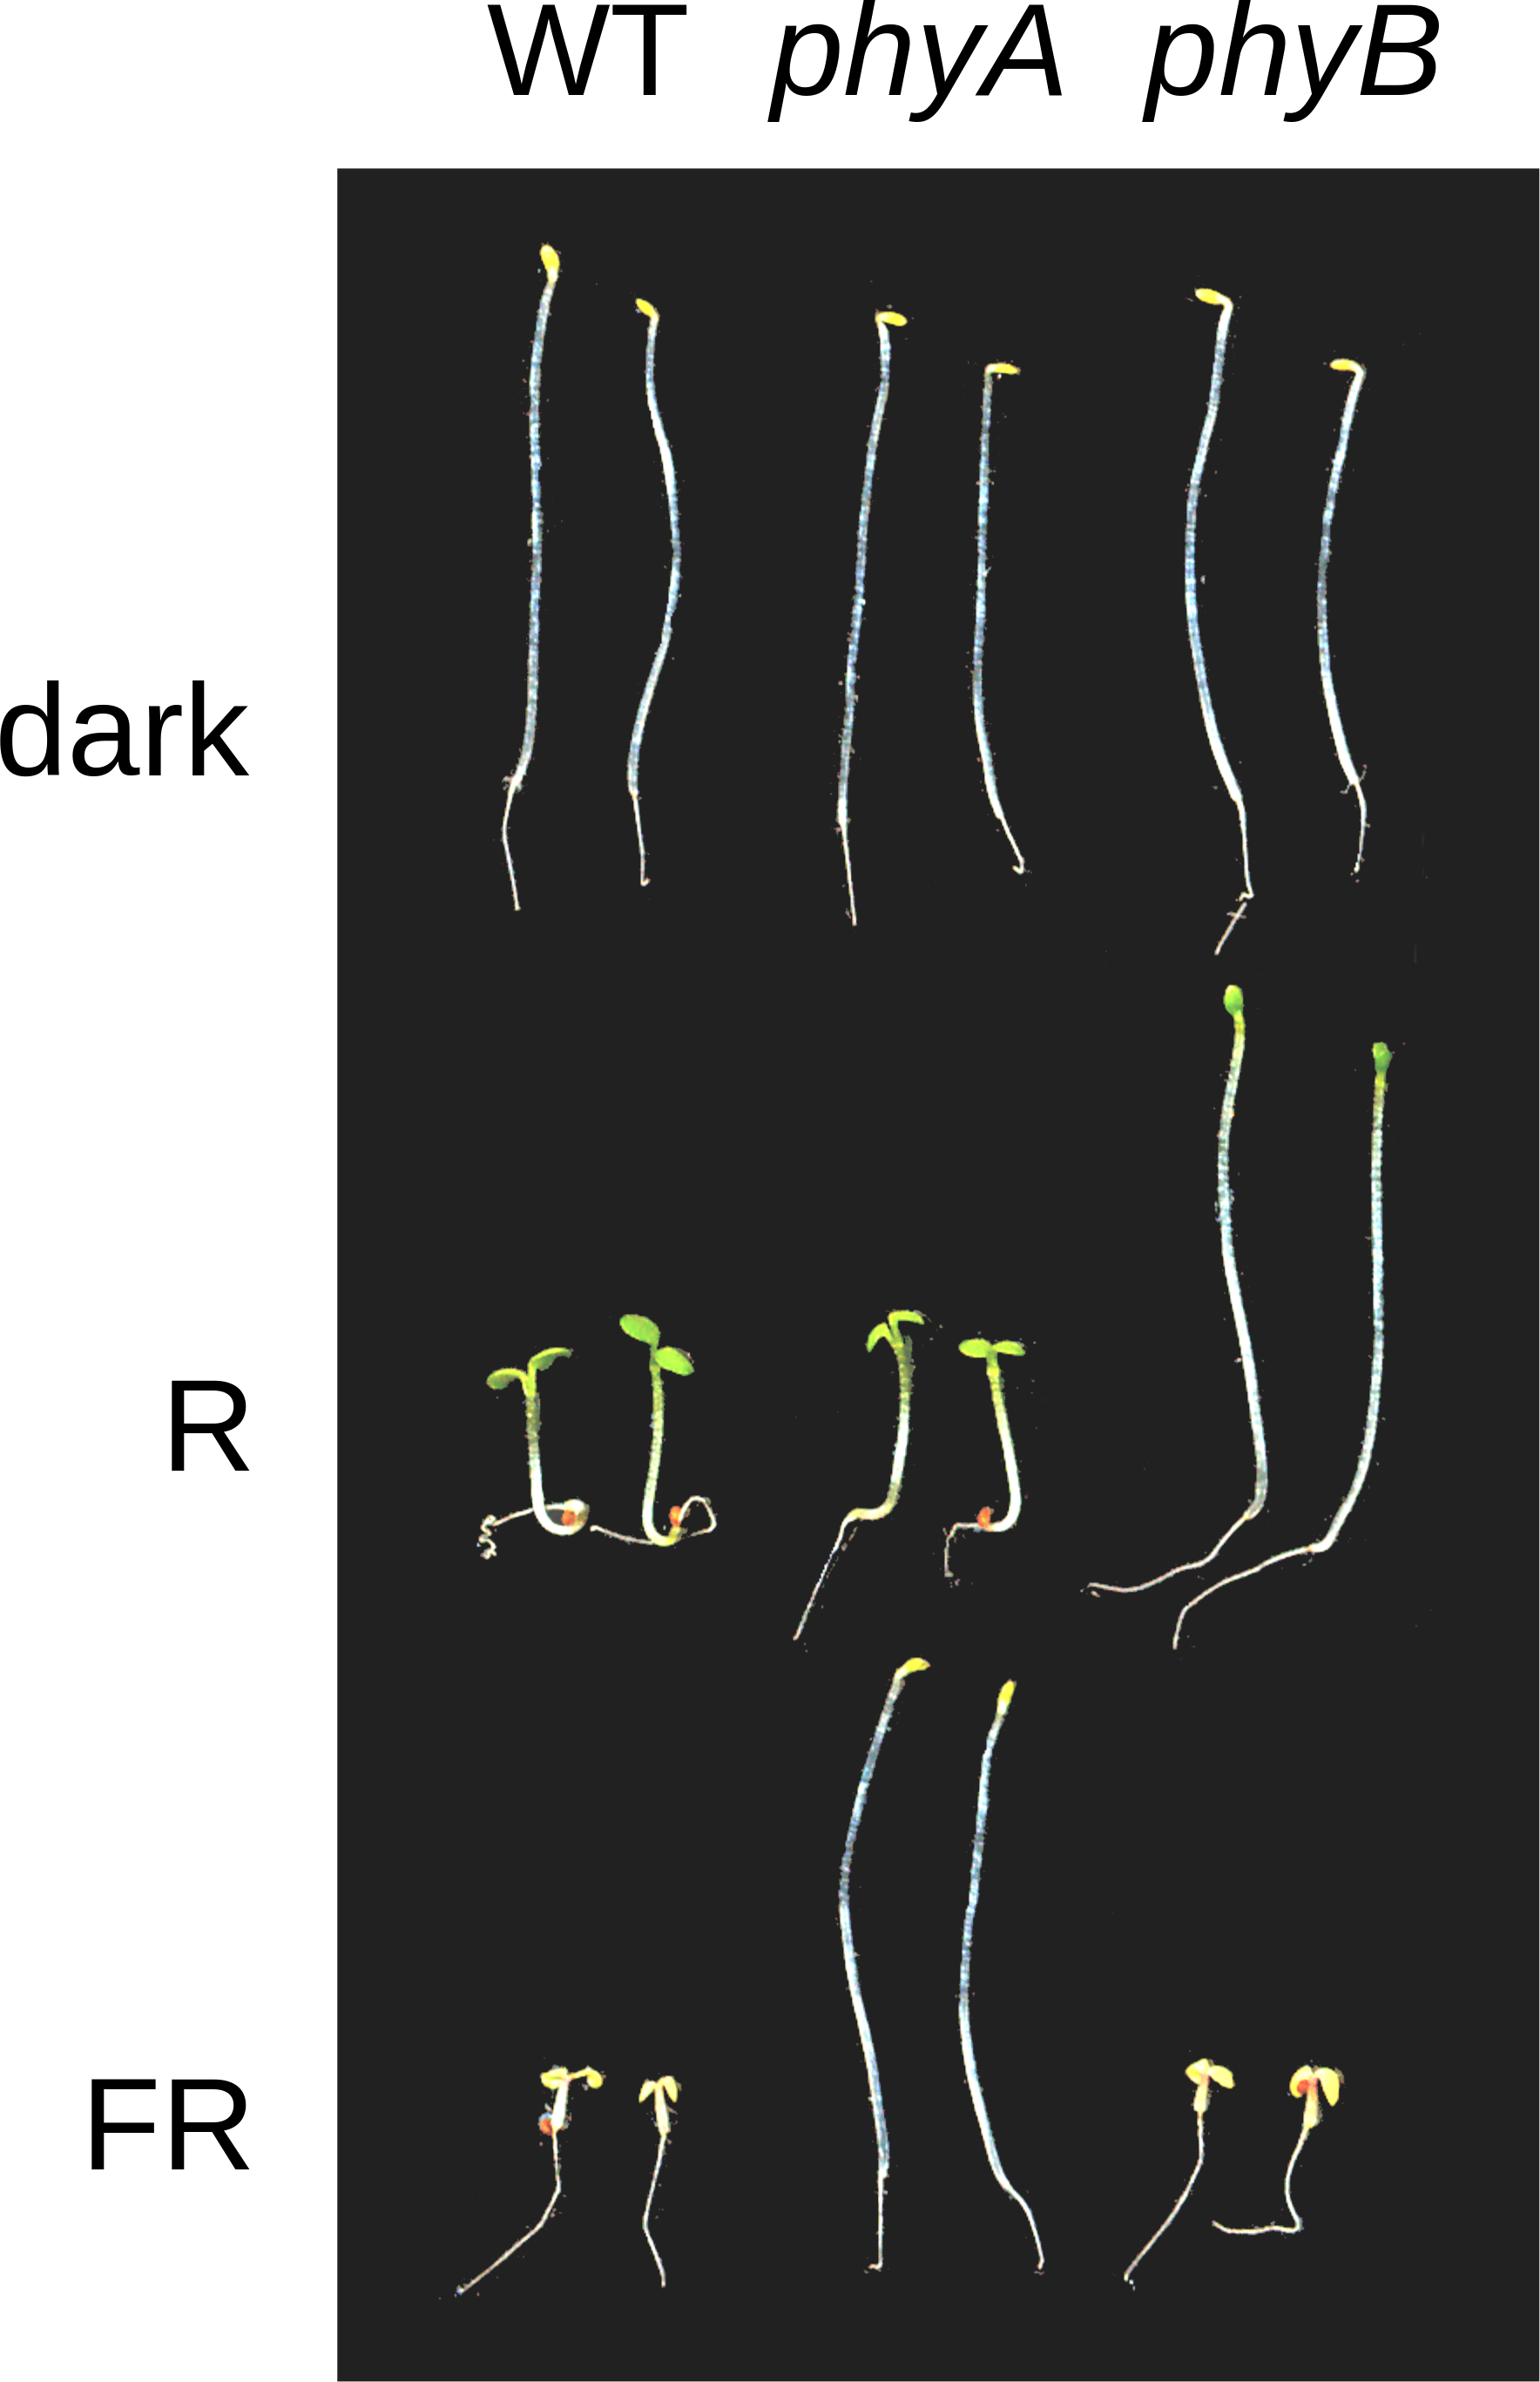 Fig. 1: Phytochrome mutant seedlings in D, R, and FR